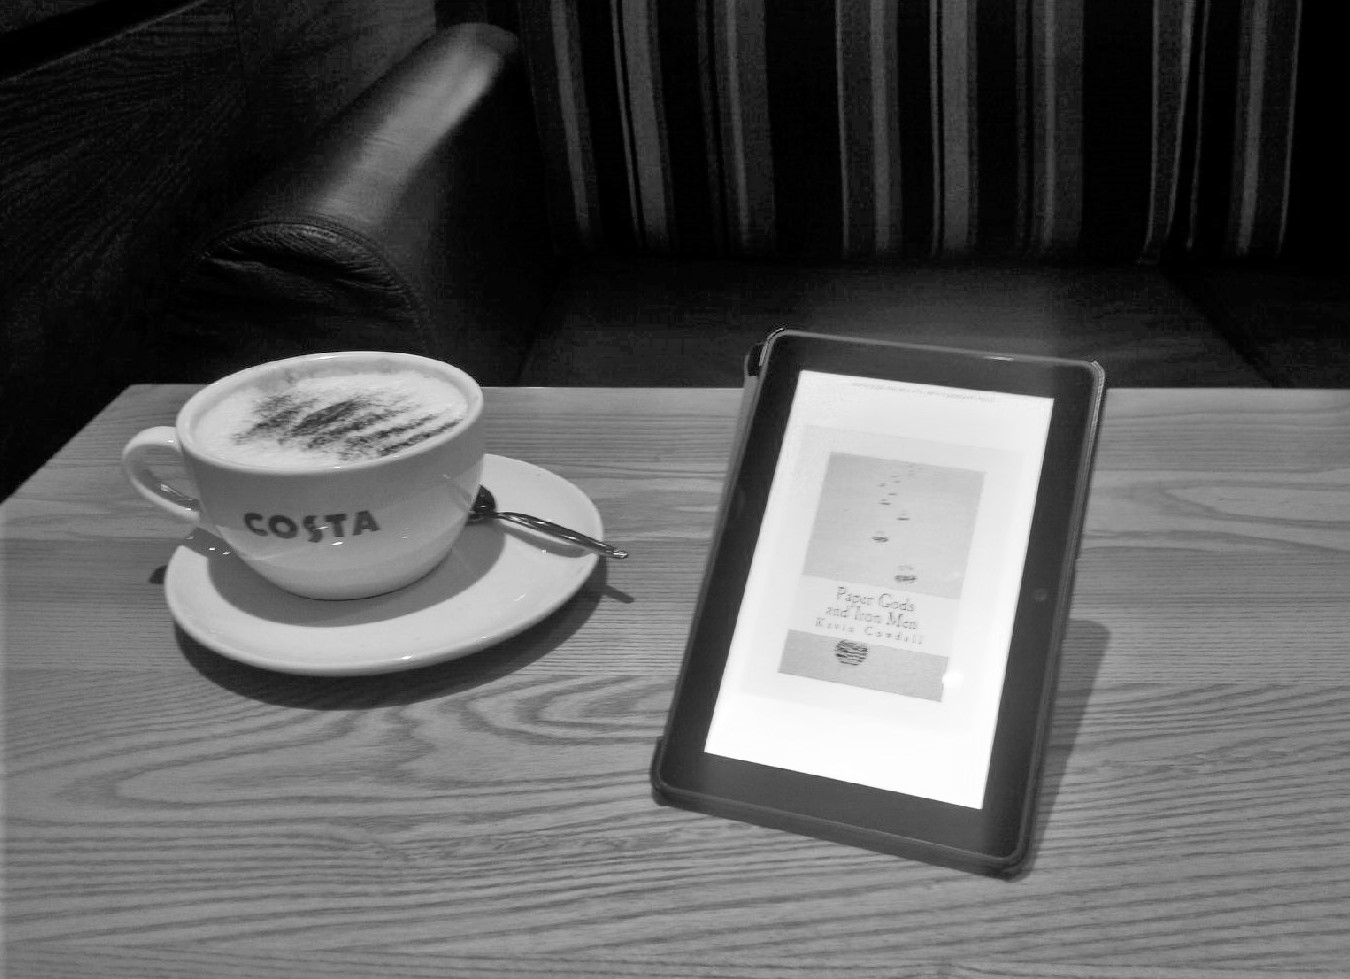 Kindle, coffee, sofa.